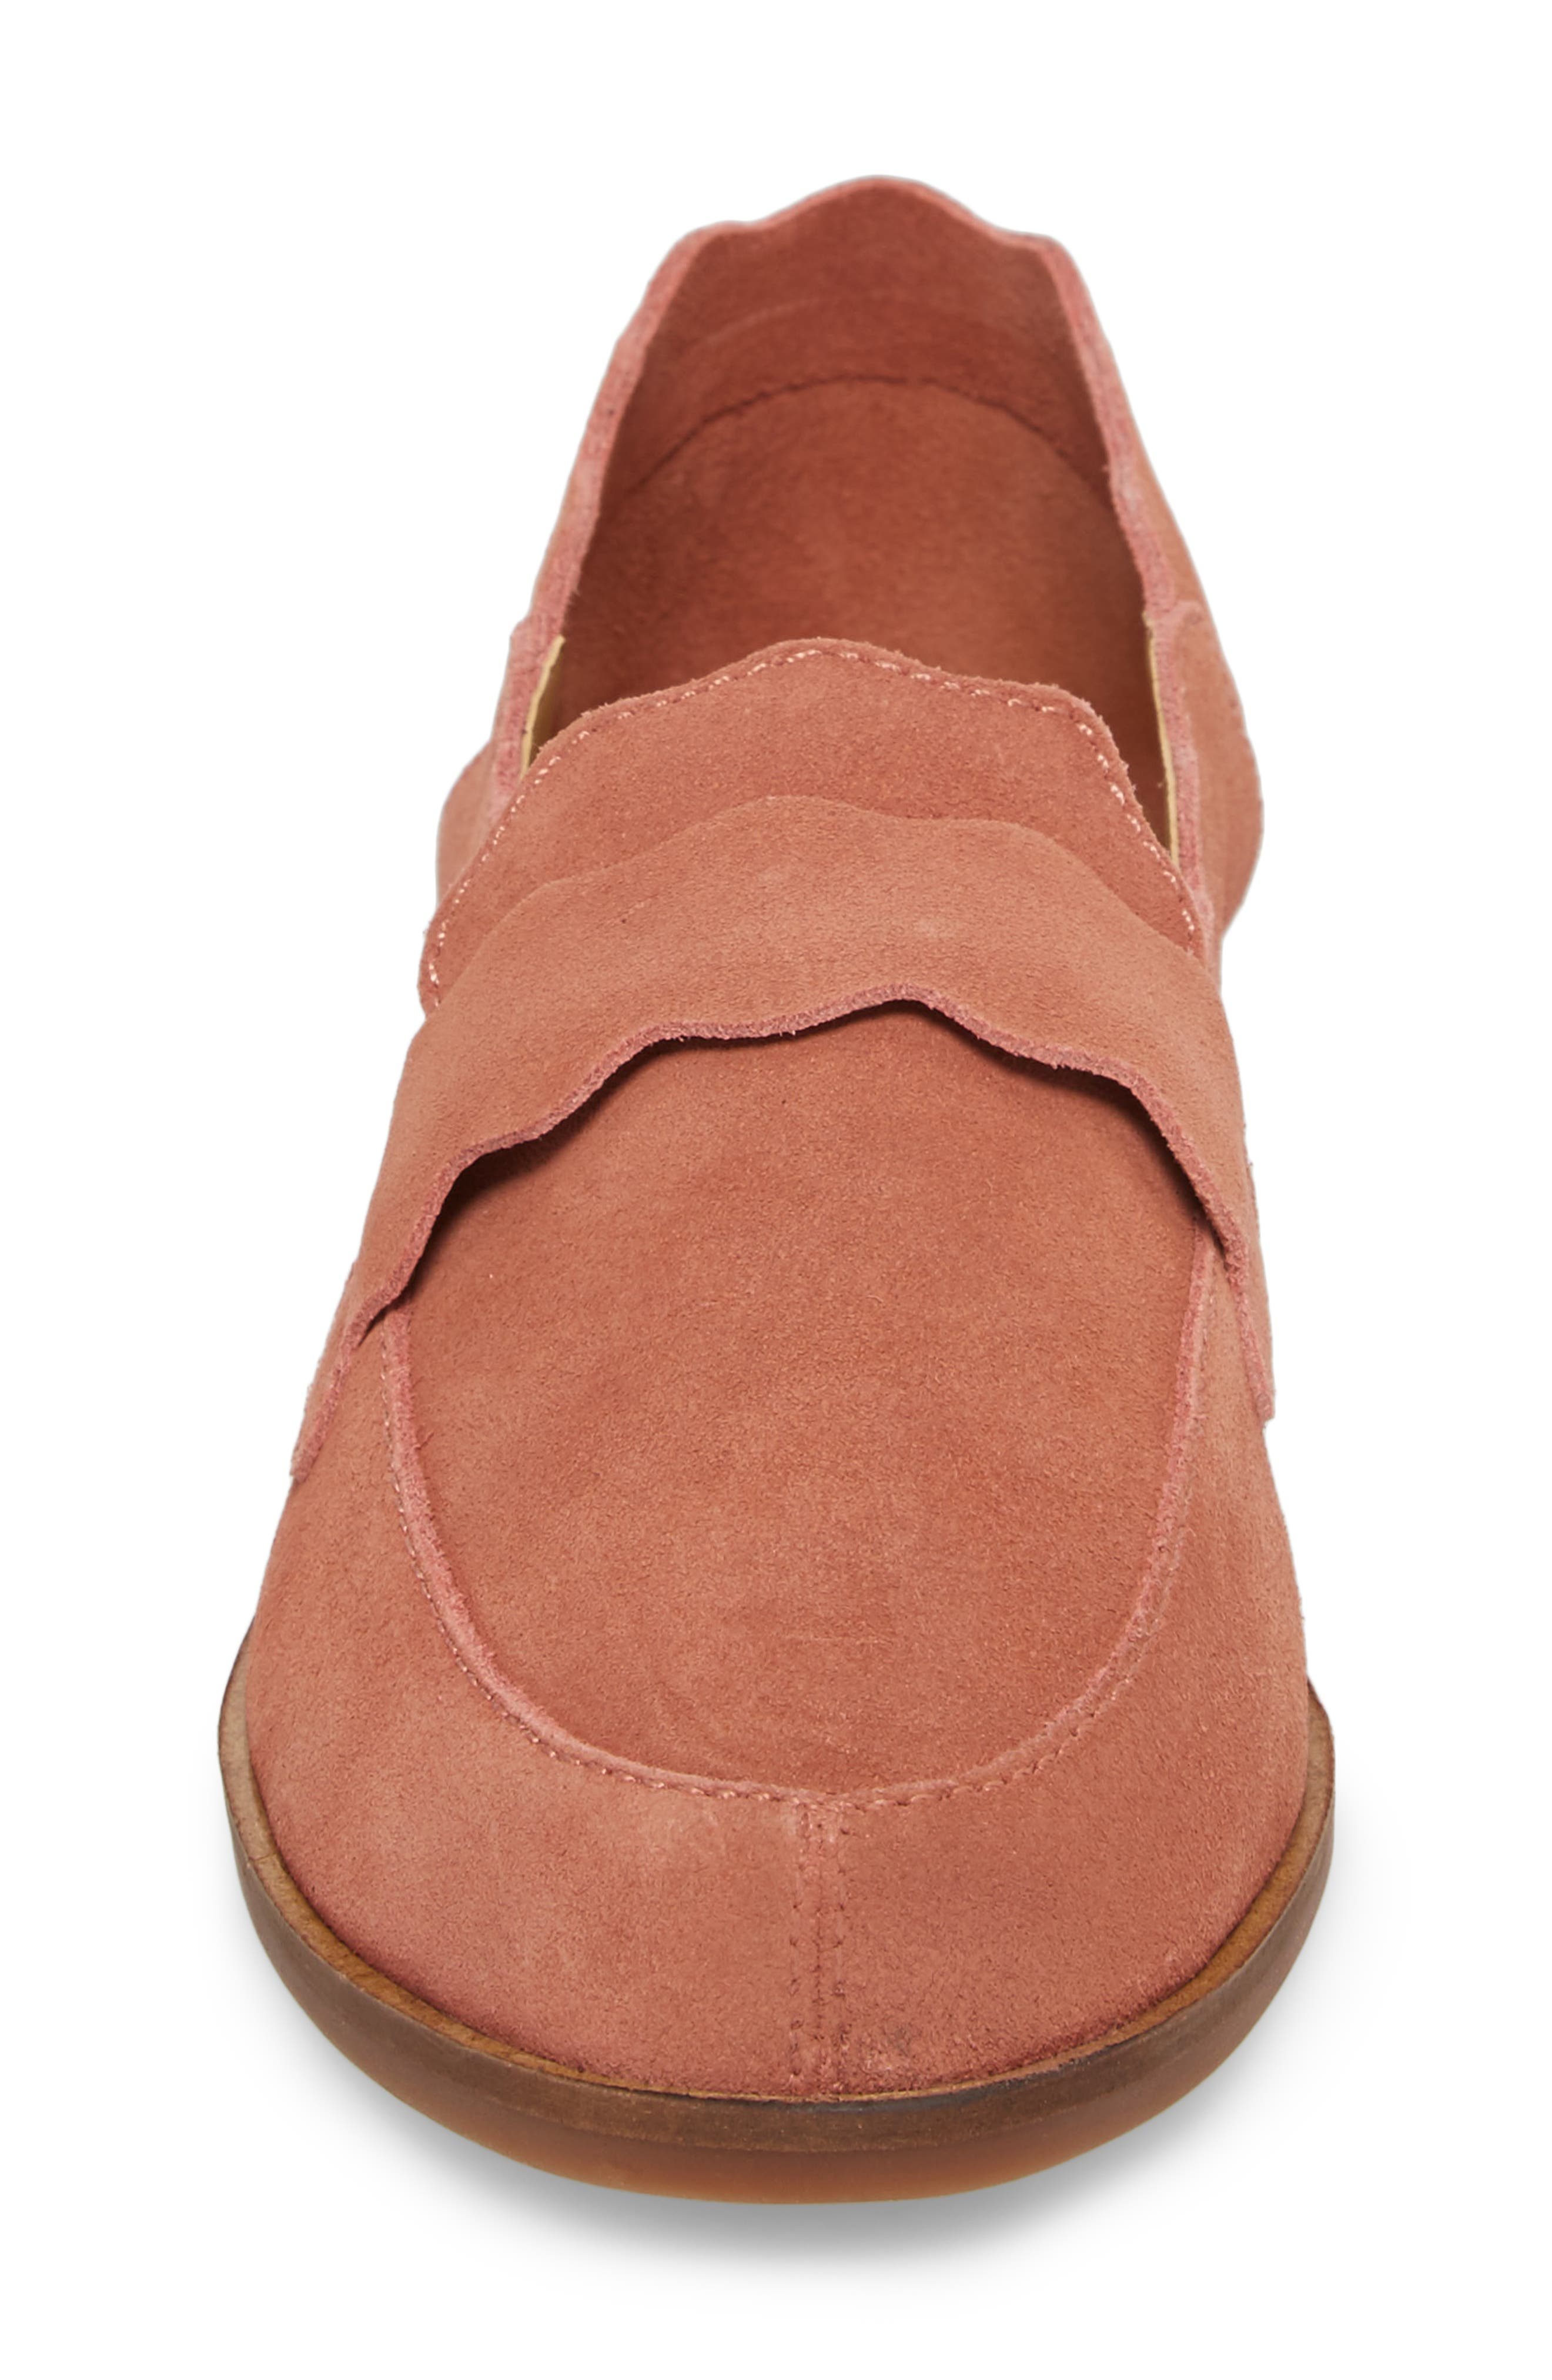 Callister Loafer,                             Alternate thumbnail 4, color,                             Canyon Rose Suede